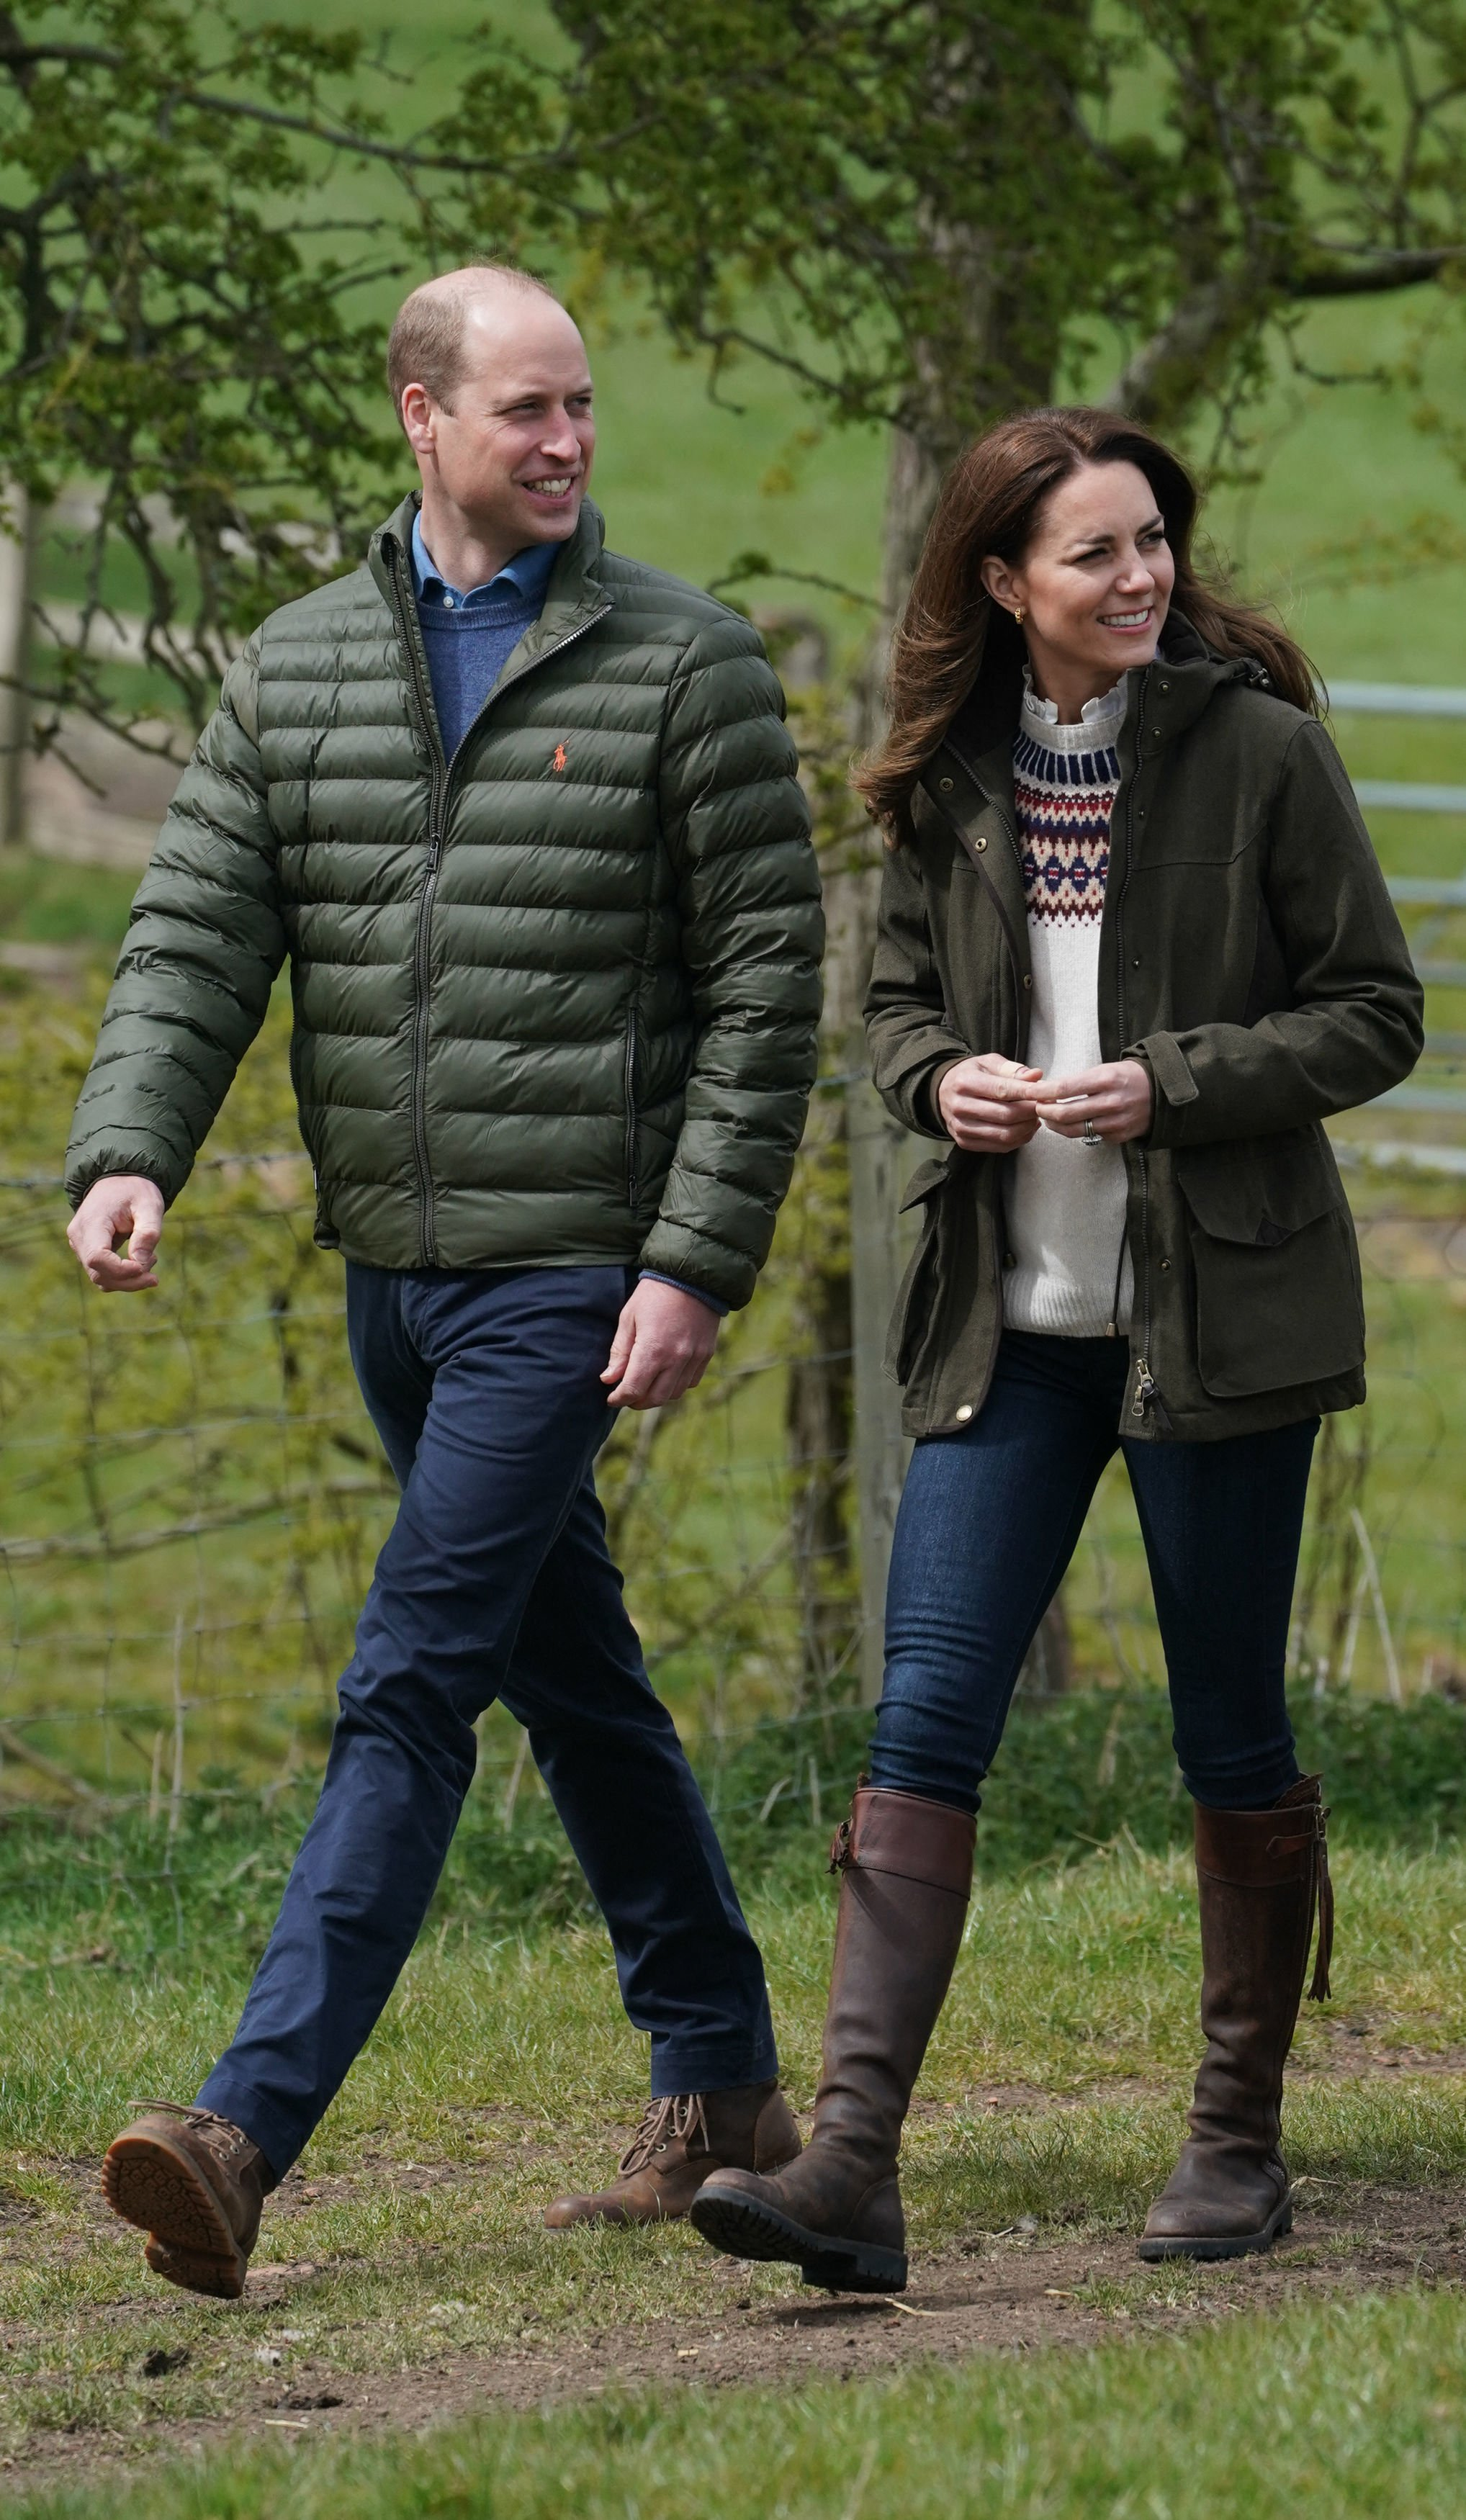 Prince William and Kate Middleton pictured during their visit to Manor Farm in Little Stainton, near Durham. | Photo: Getty Images